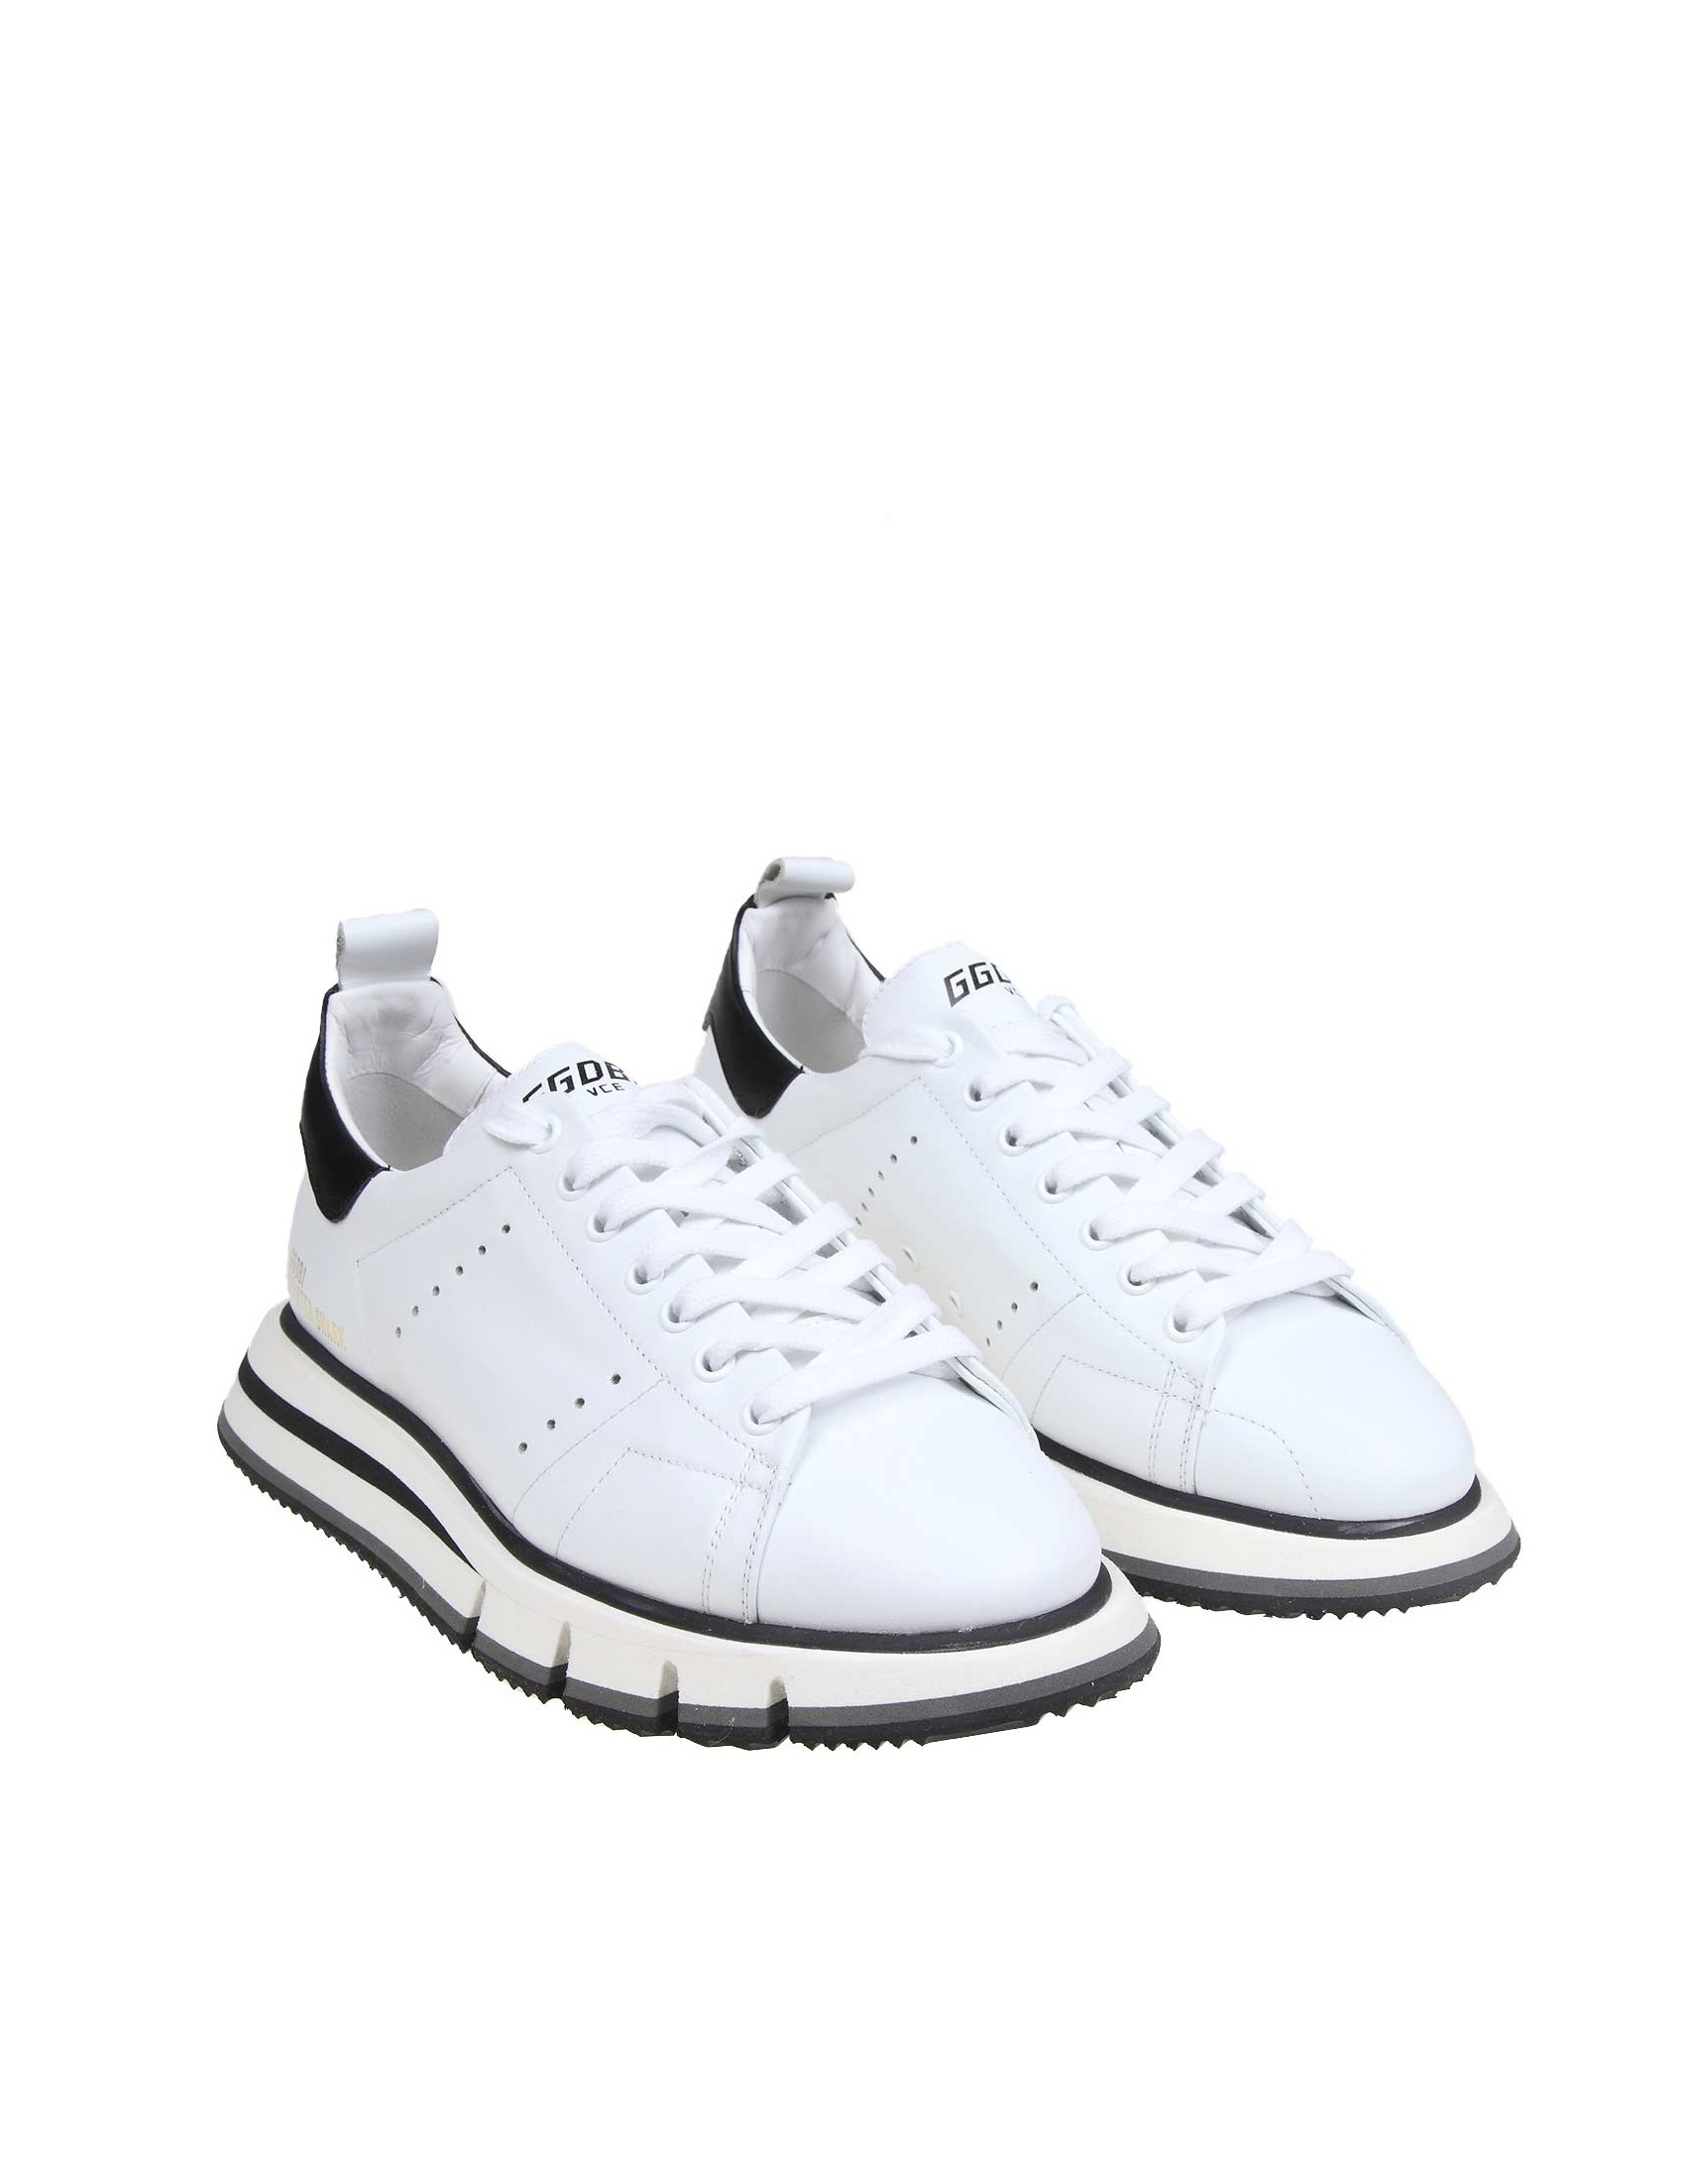 ae188f5c6f GOLDEN GOOSE SNEAKERS STARTER SHARK IN WHITE LEATHER